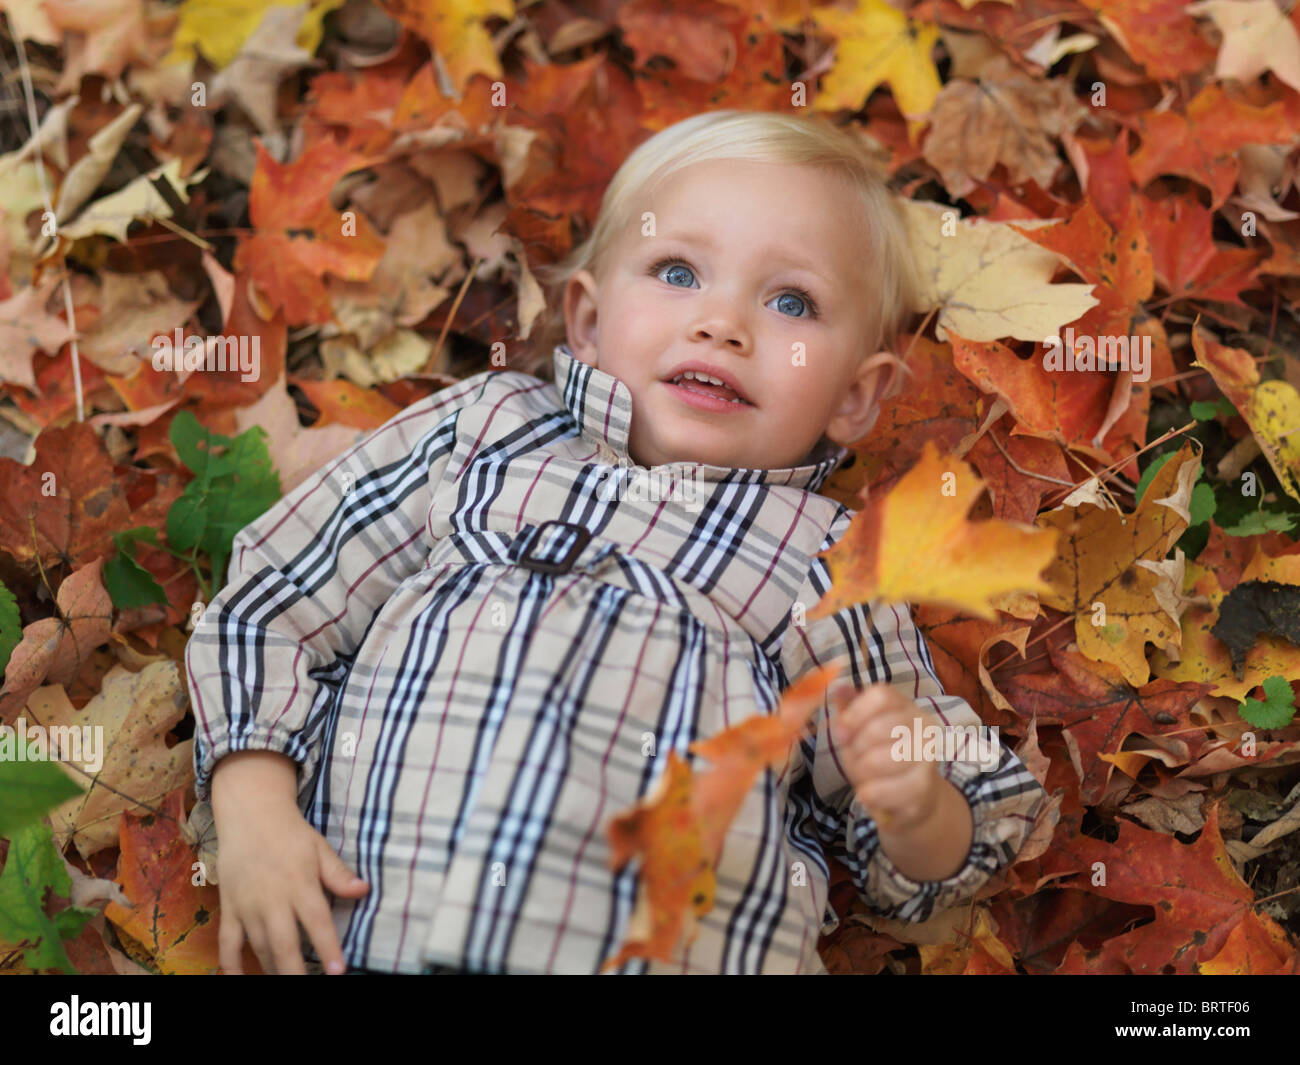 Two year old girl lying on fallen tree leaves in autumn nature - Stock Image